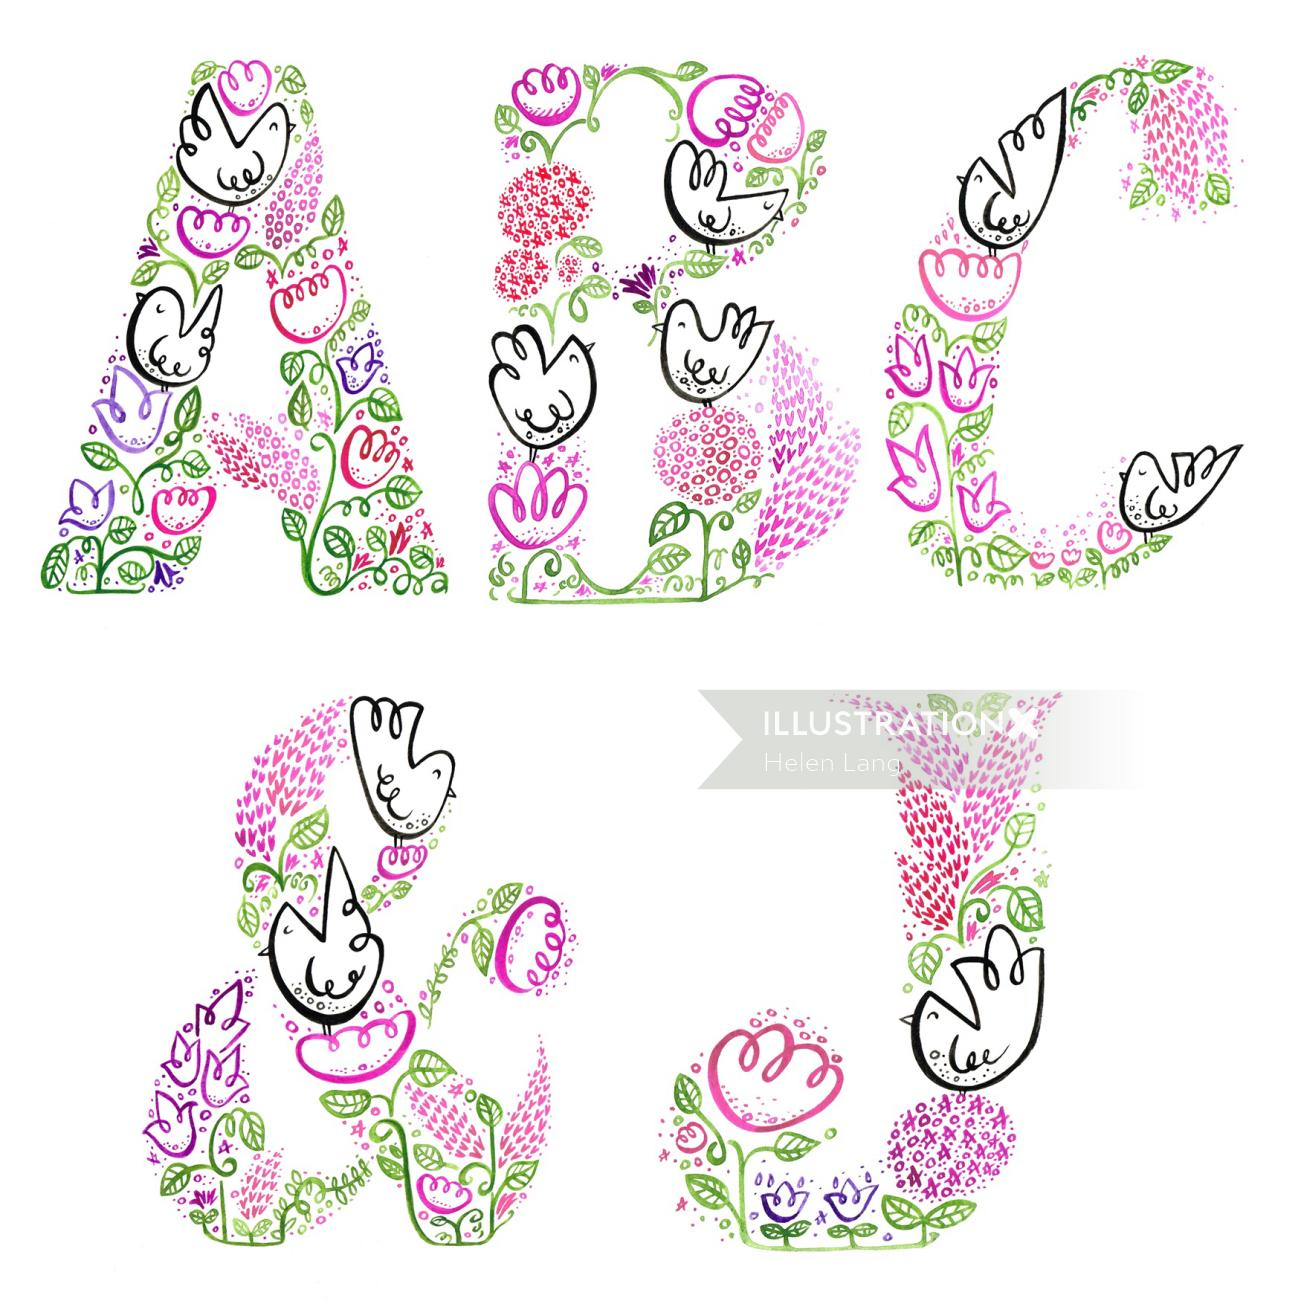 Illustration of decorative lettering